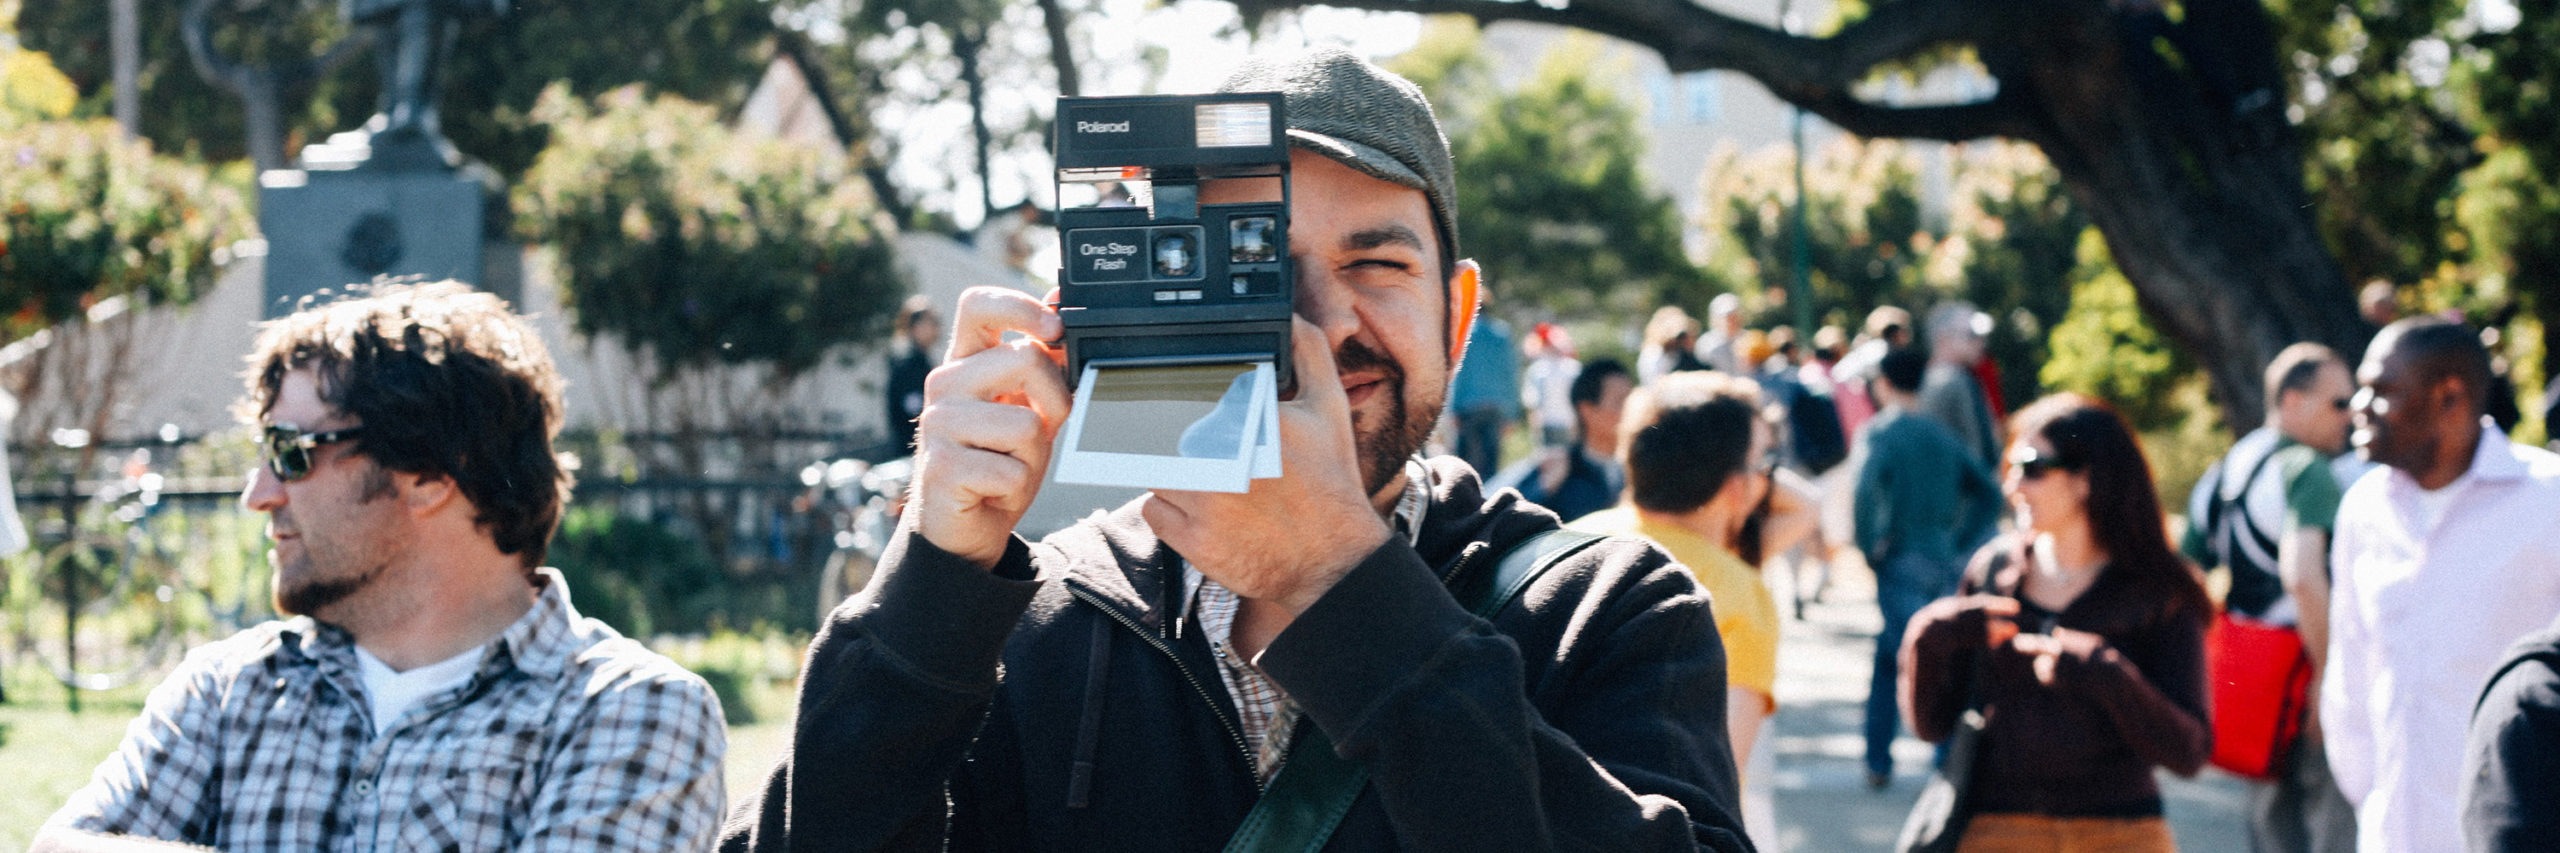 Man with a Polaroid camera